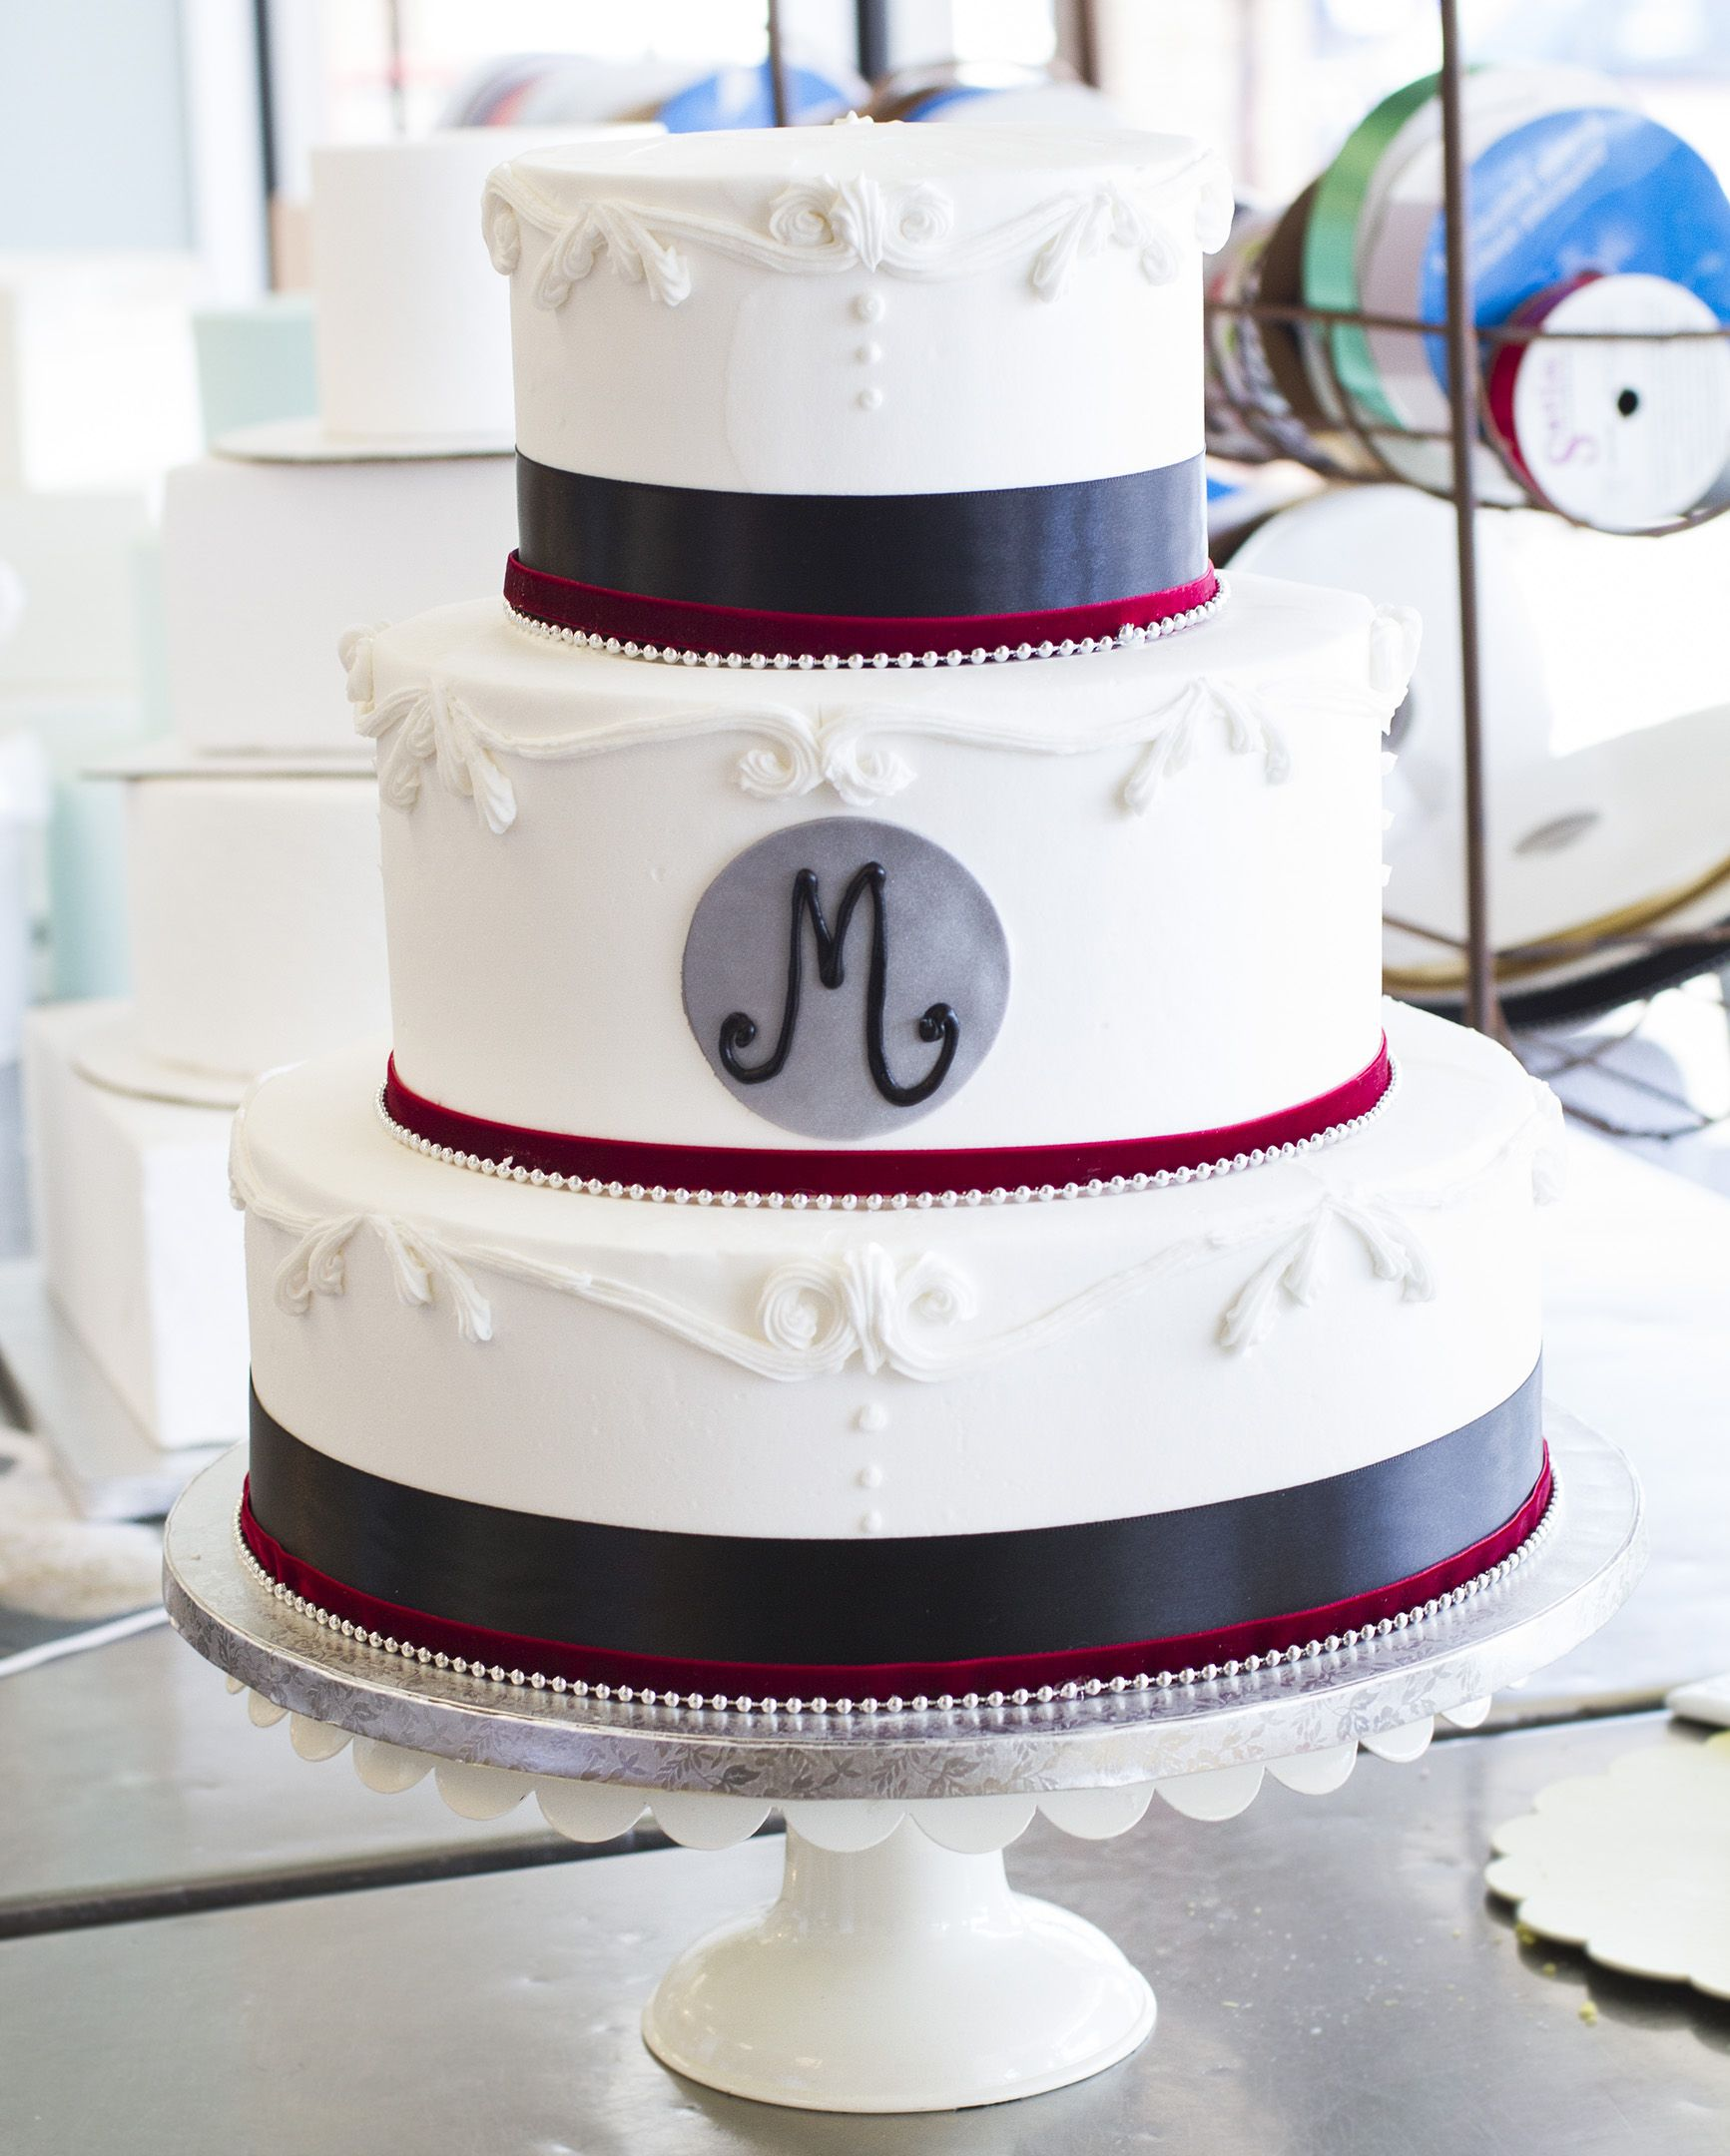 We love the color choices on this black, red and white monogrammed ...